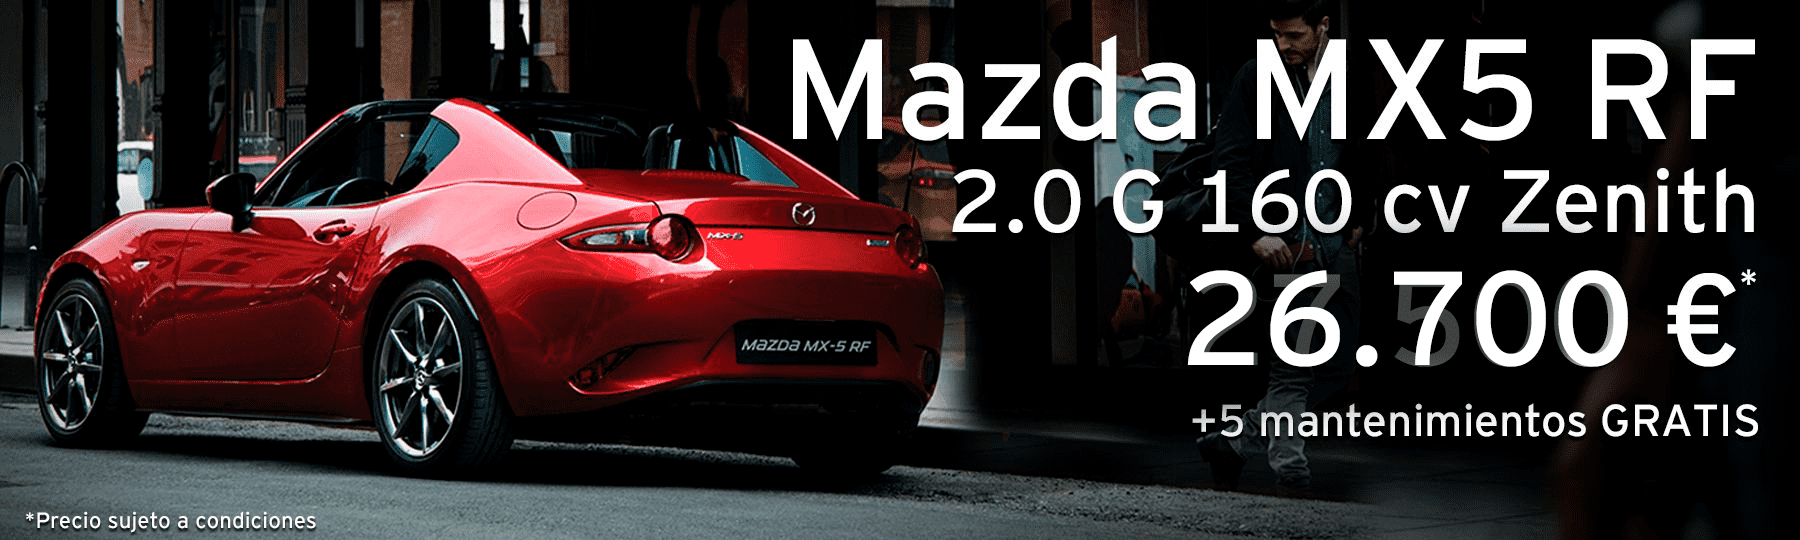 Mazda MX5 RF 2.0 G de 160 cv Soul Red Crystal